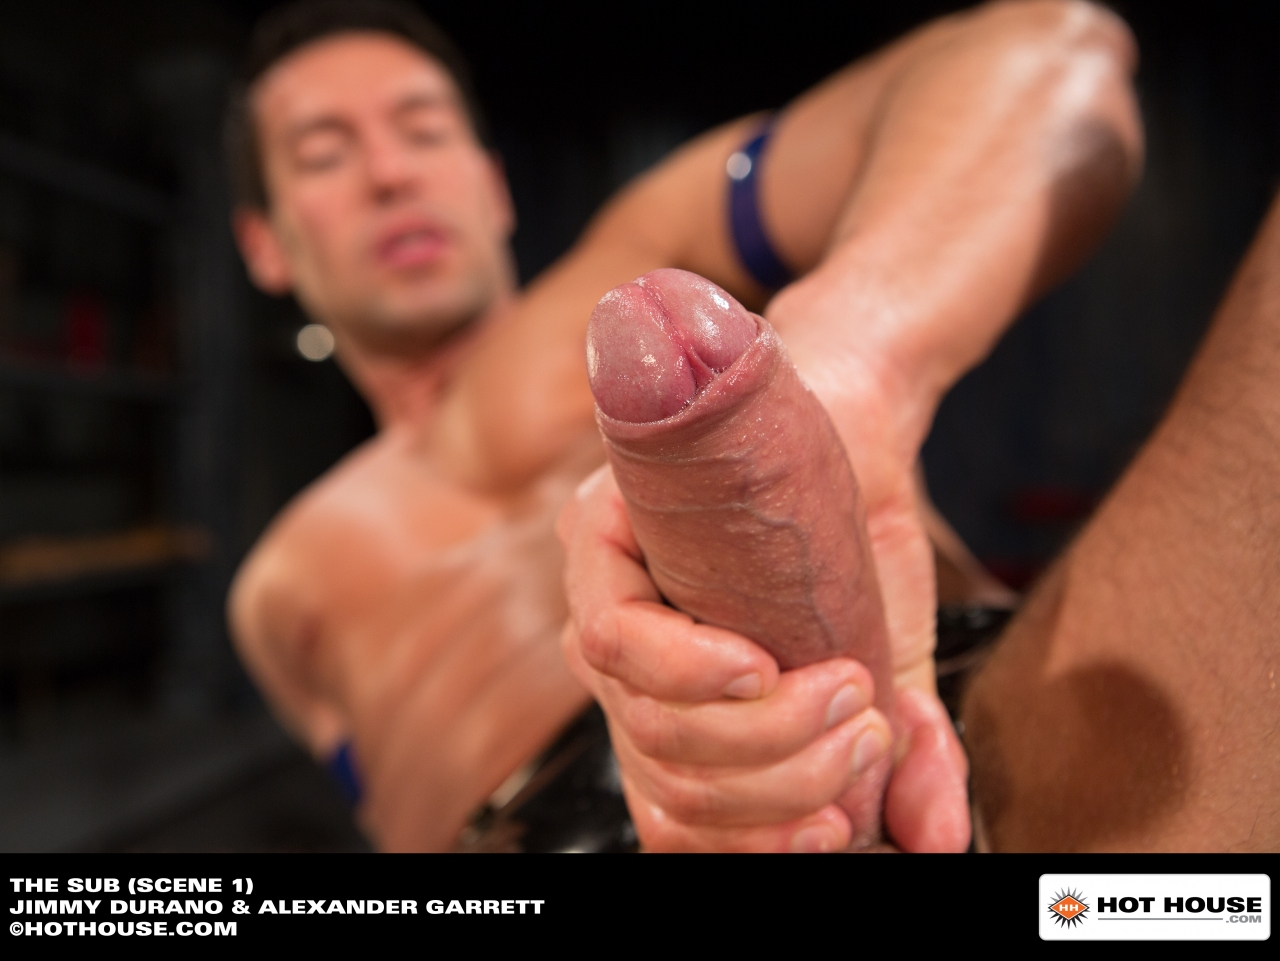 Hot House – The Sub (Scene 1)